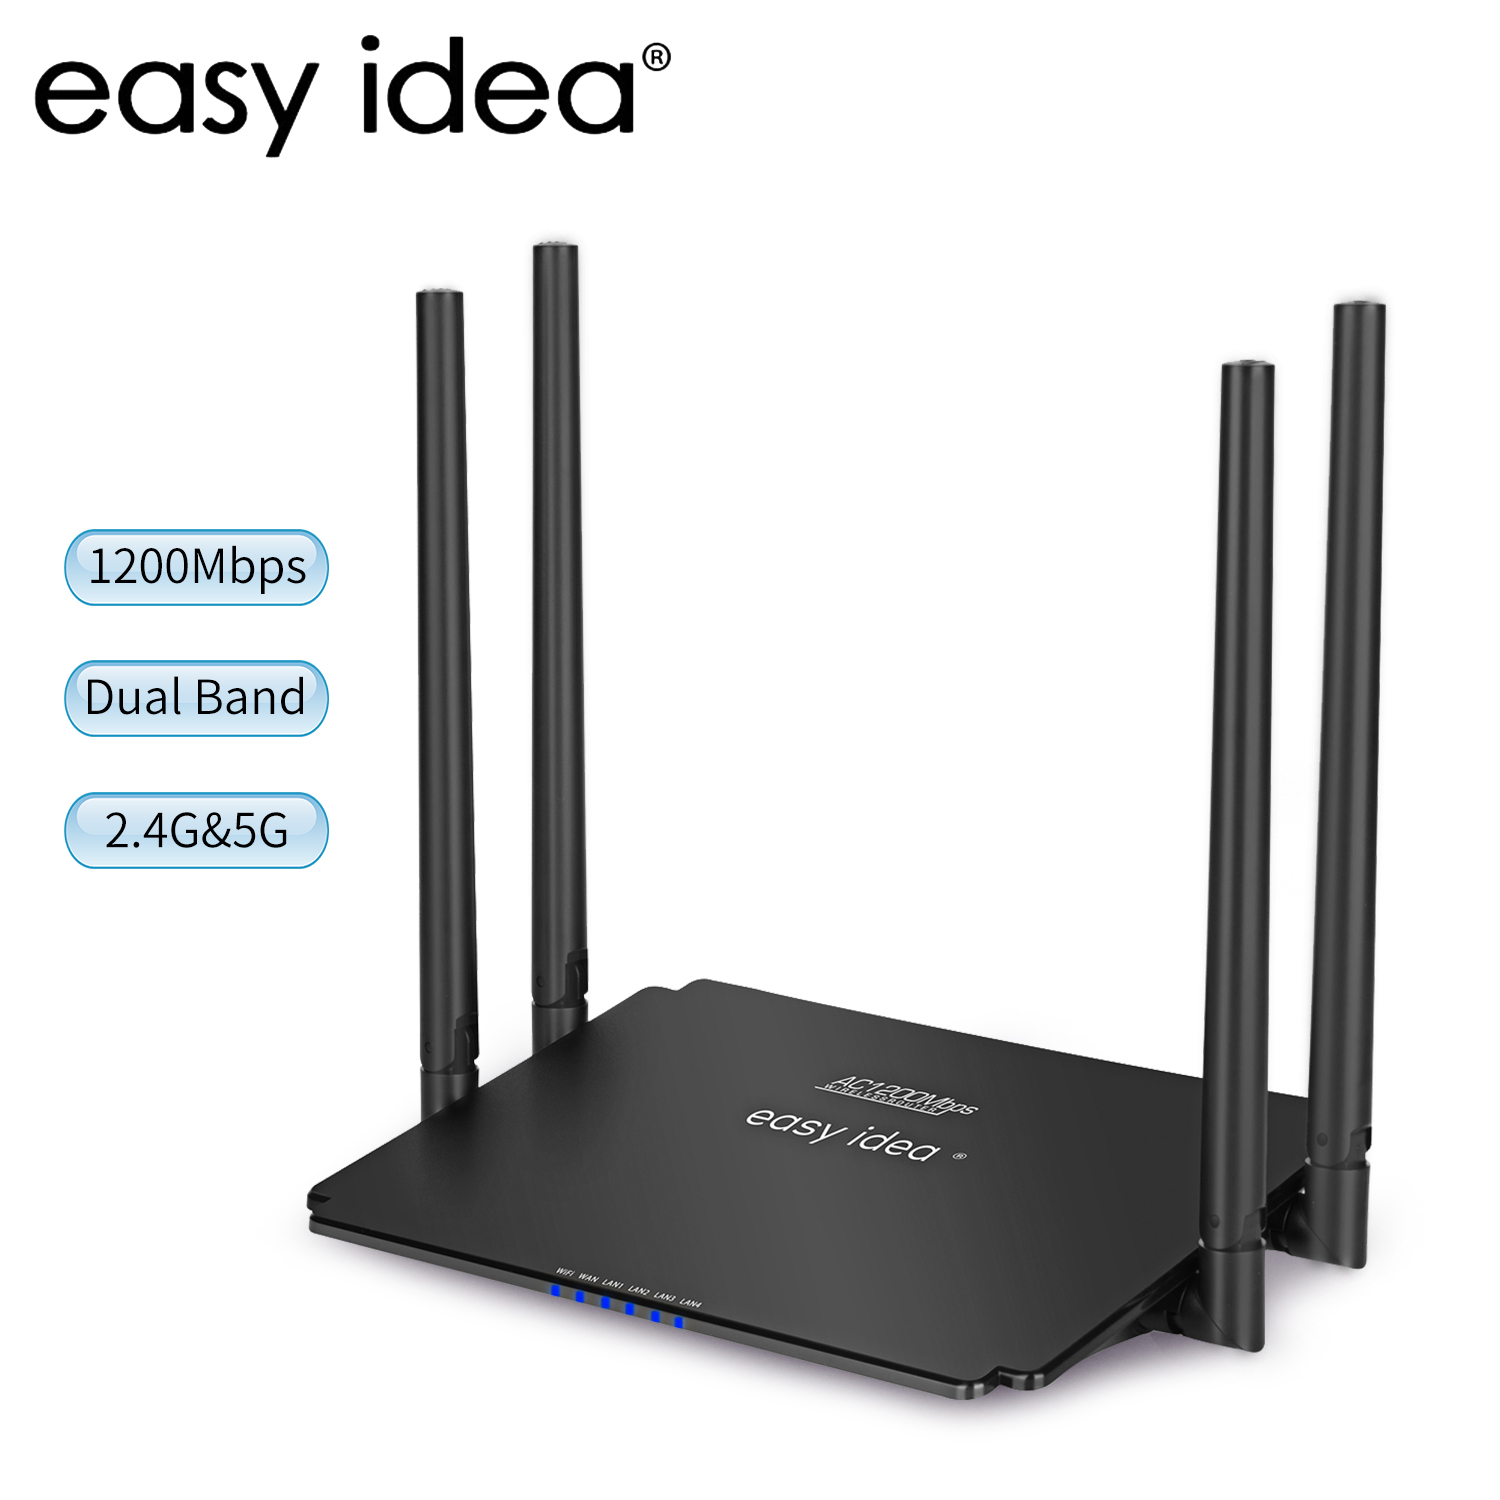 Wifi Router AC1200 Wireless Router Wisp Mode Access Point High Power Dual Band 2.4G/5Ghz Smart APP Wi-fi Router